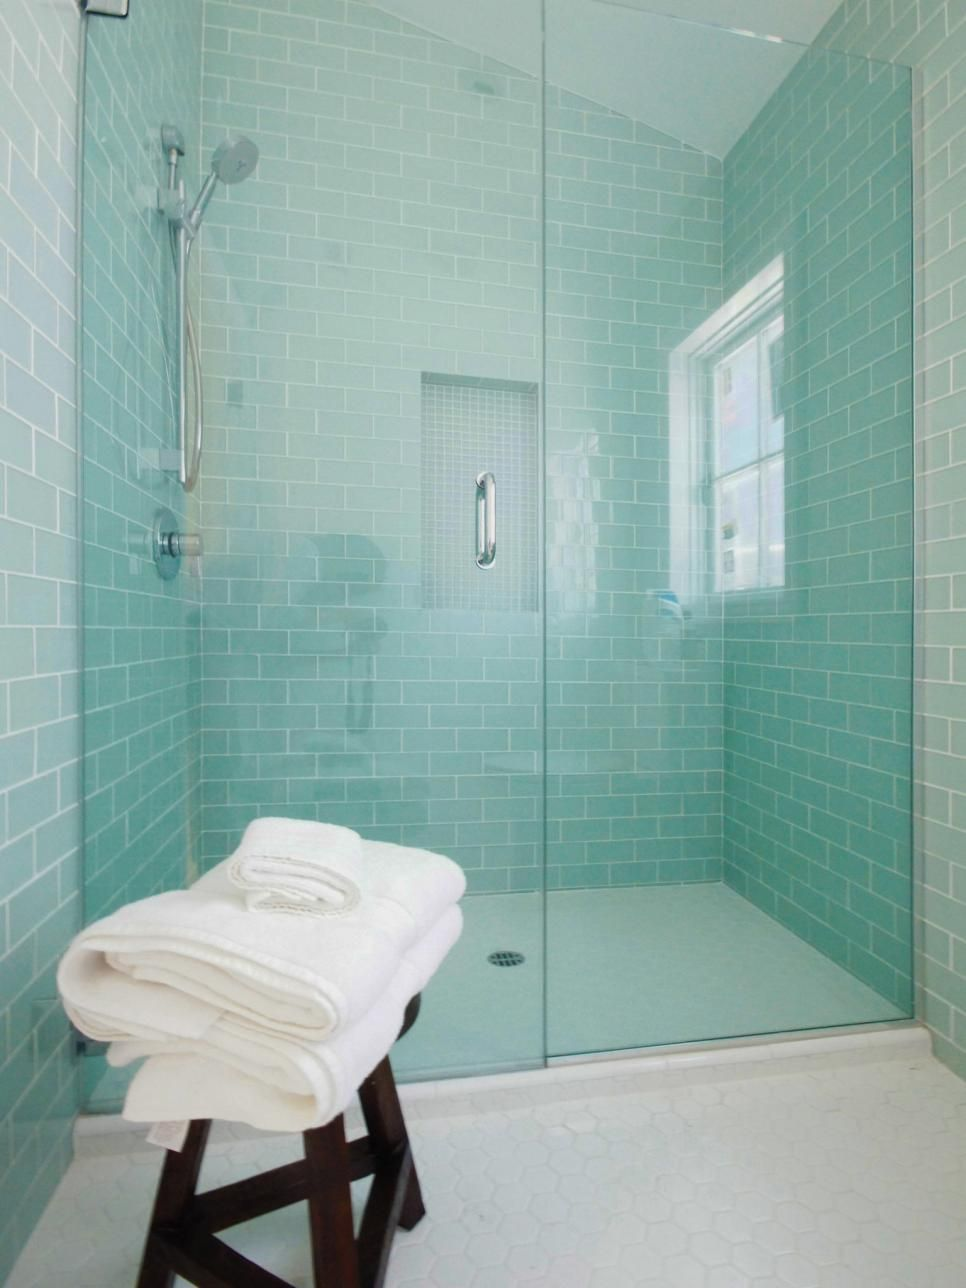 Mint-colored subway wall tiles create a serene setting in this cozy ...